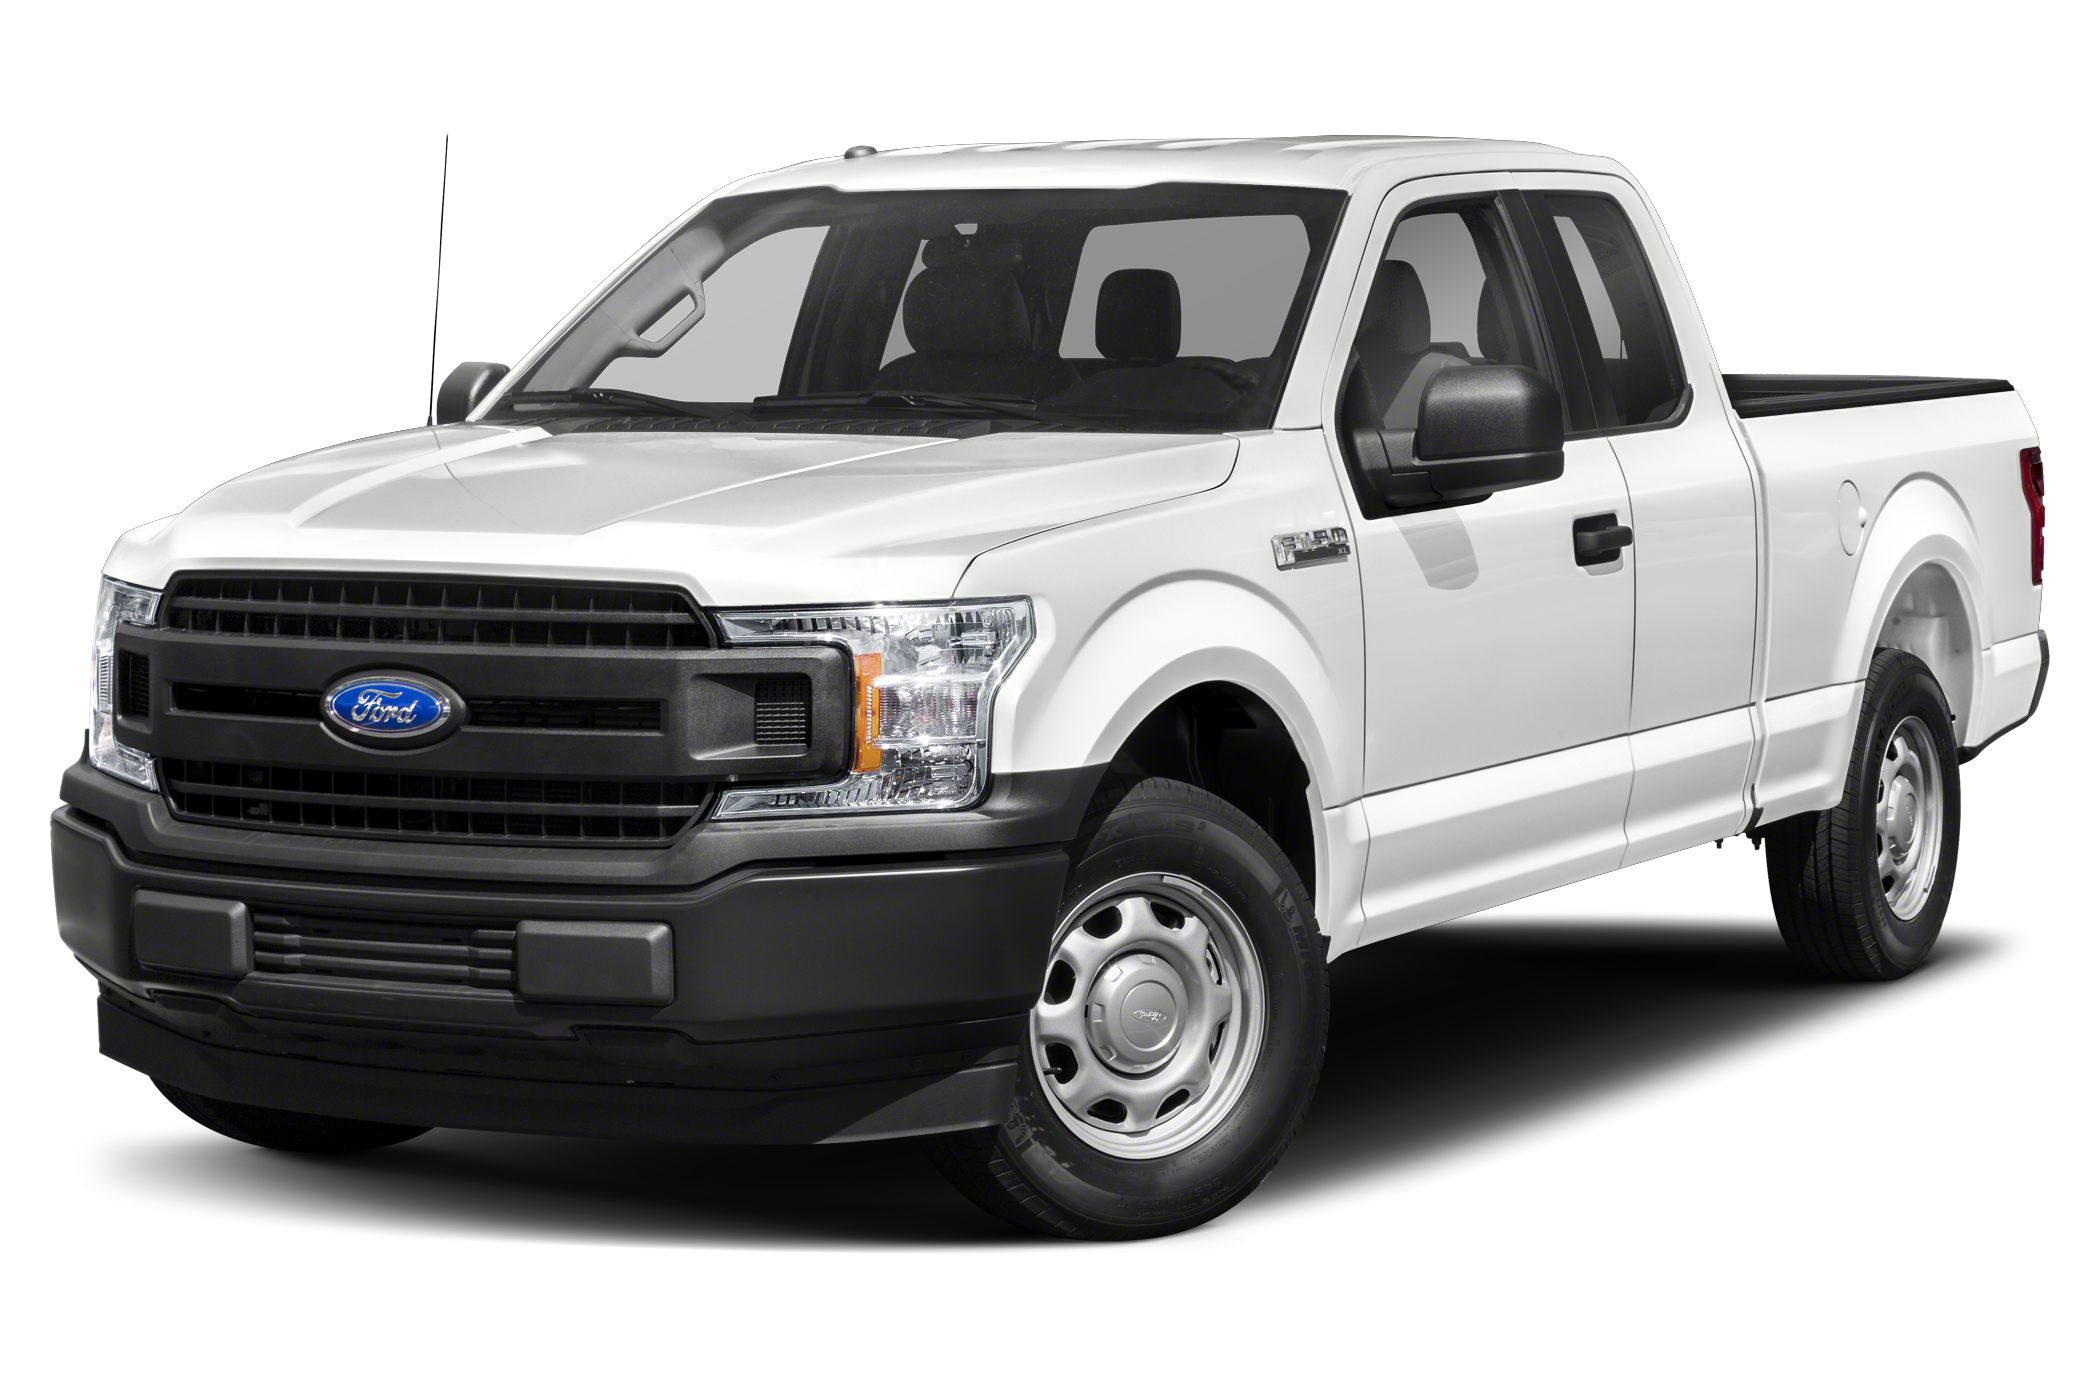 2019 Ford F-150 Lariat 4x4 SuperCab Styleside 8 ft. box 163 in. WB